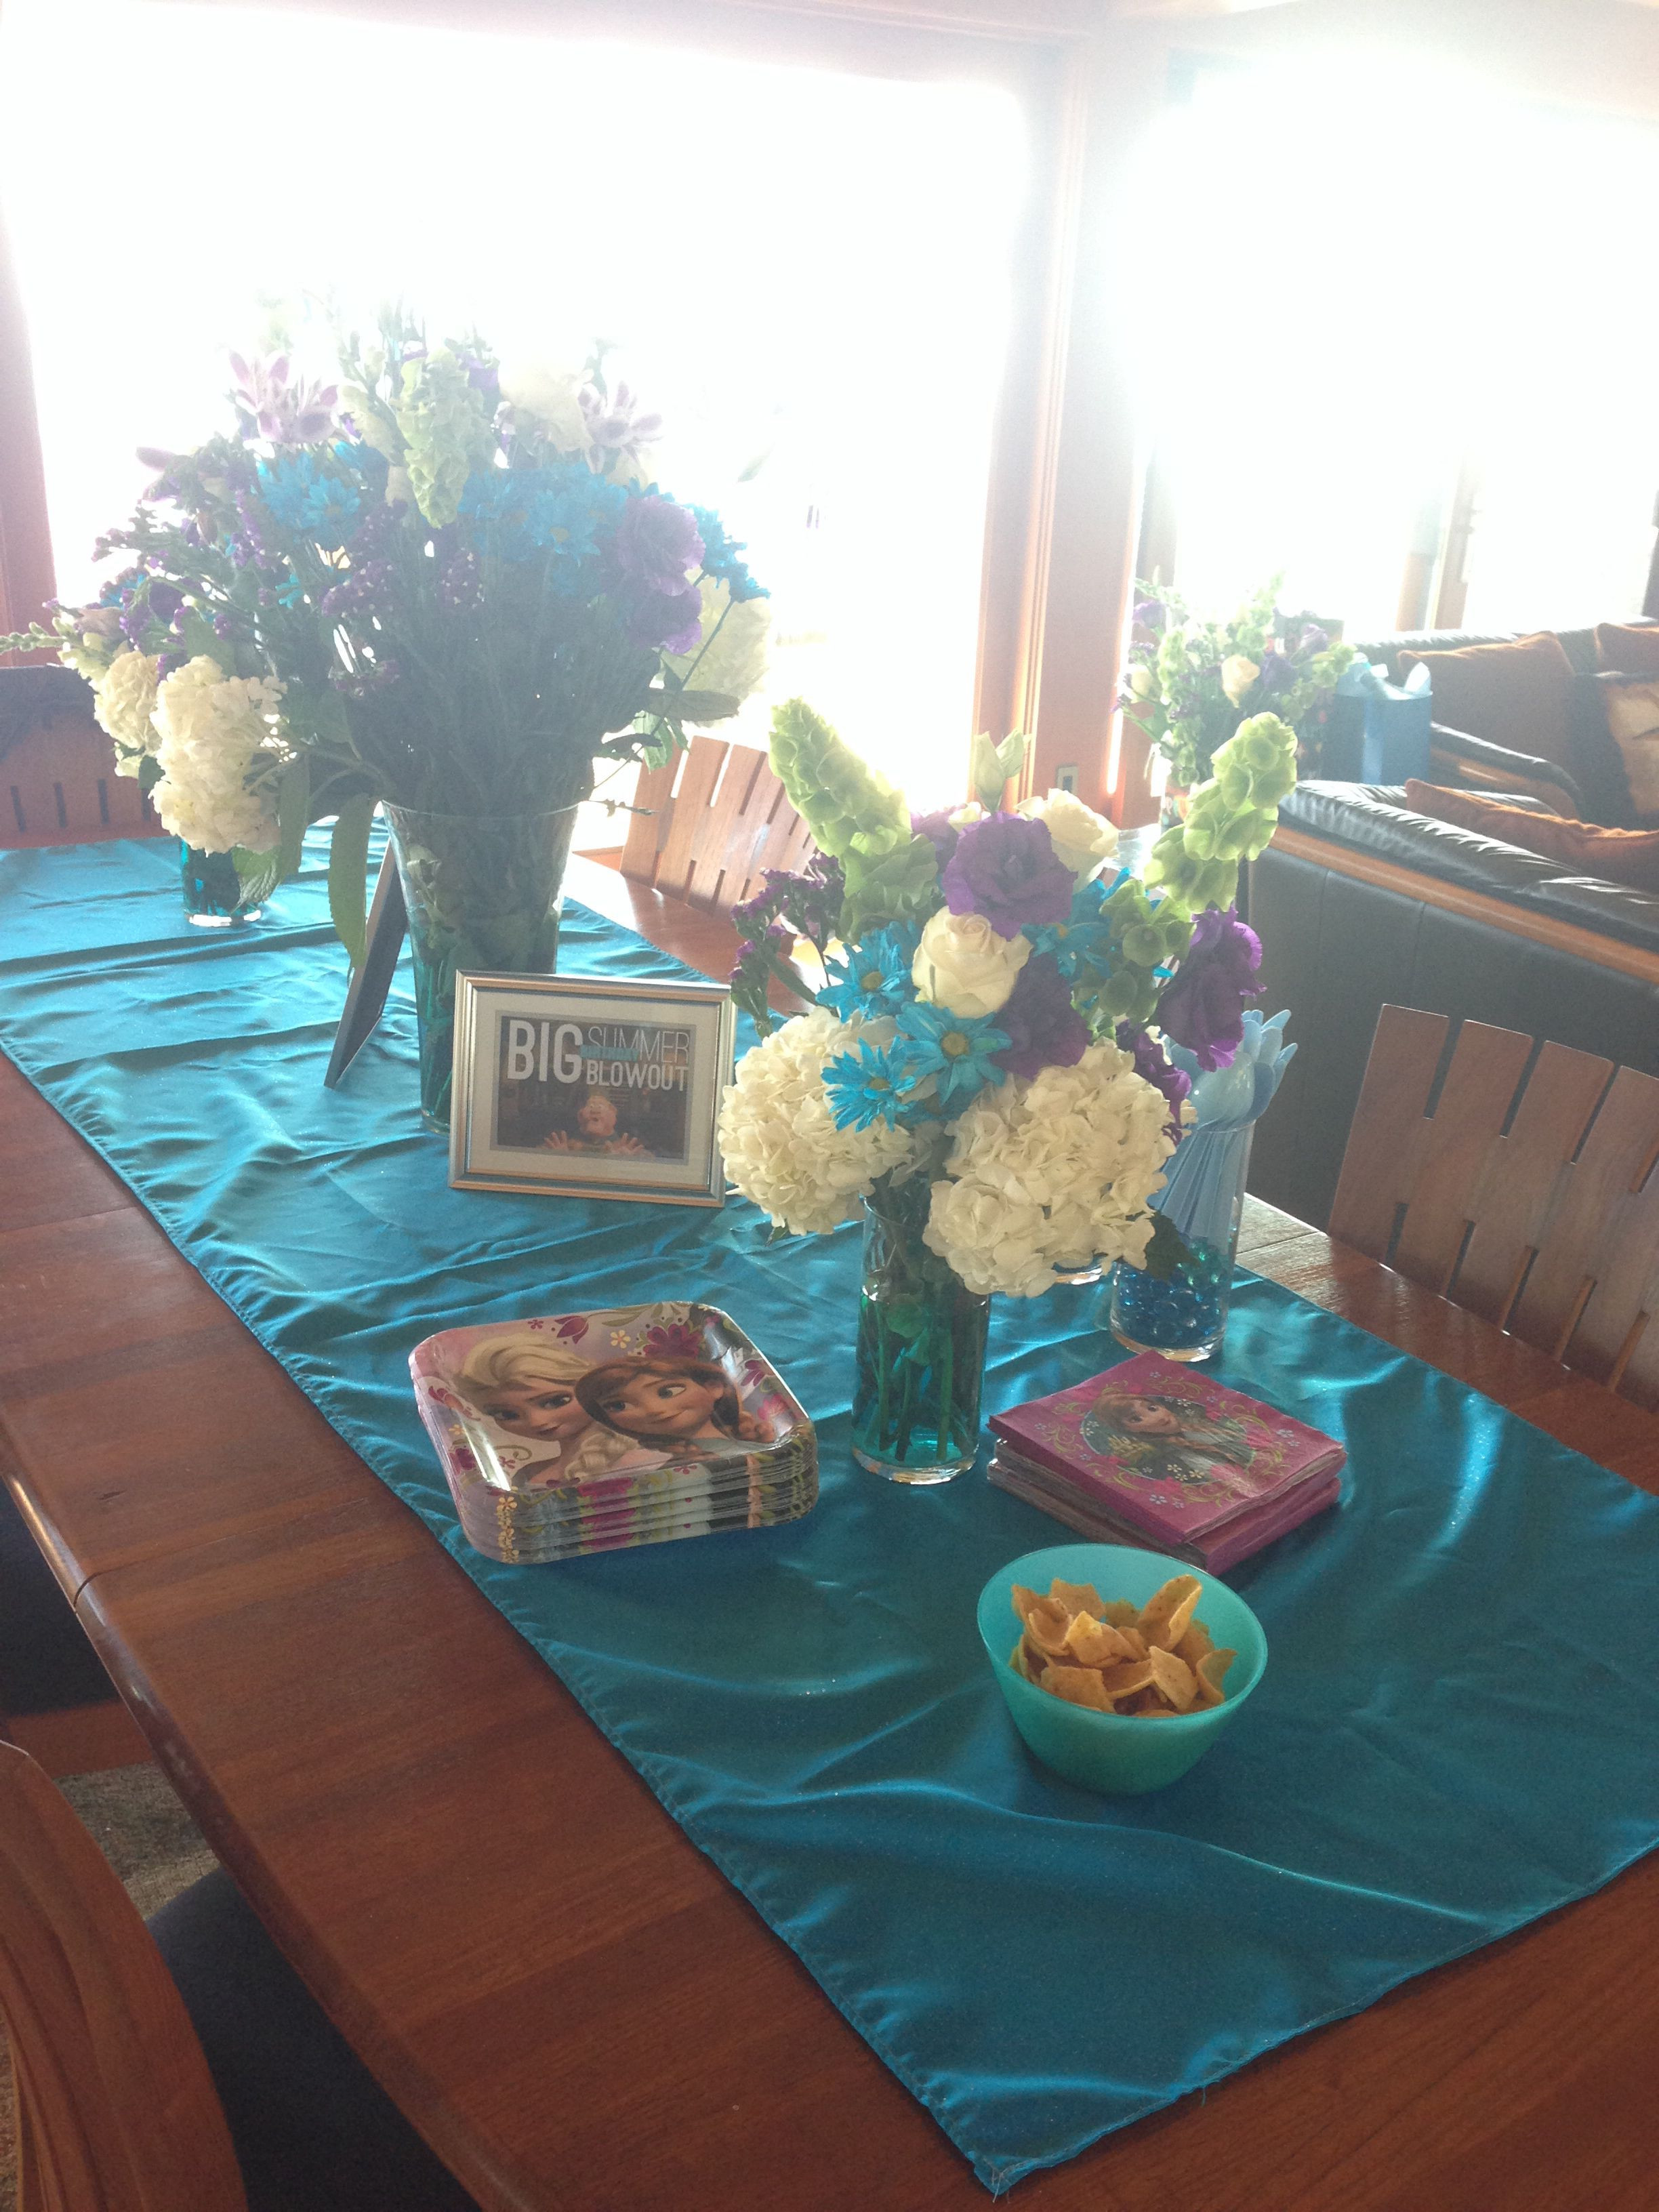 teal table vase of my frozen party dinner table decor flowers vases dollar tree regarding my frozen party dinner table decor flowers vases dollar tree blue sparkly table runner joanns frozen plates and napkins party city